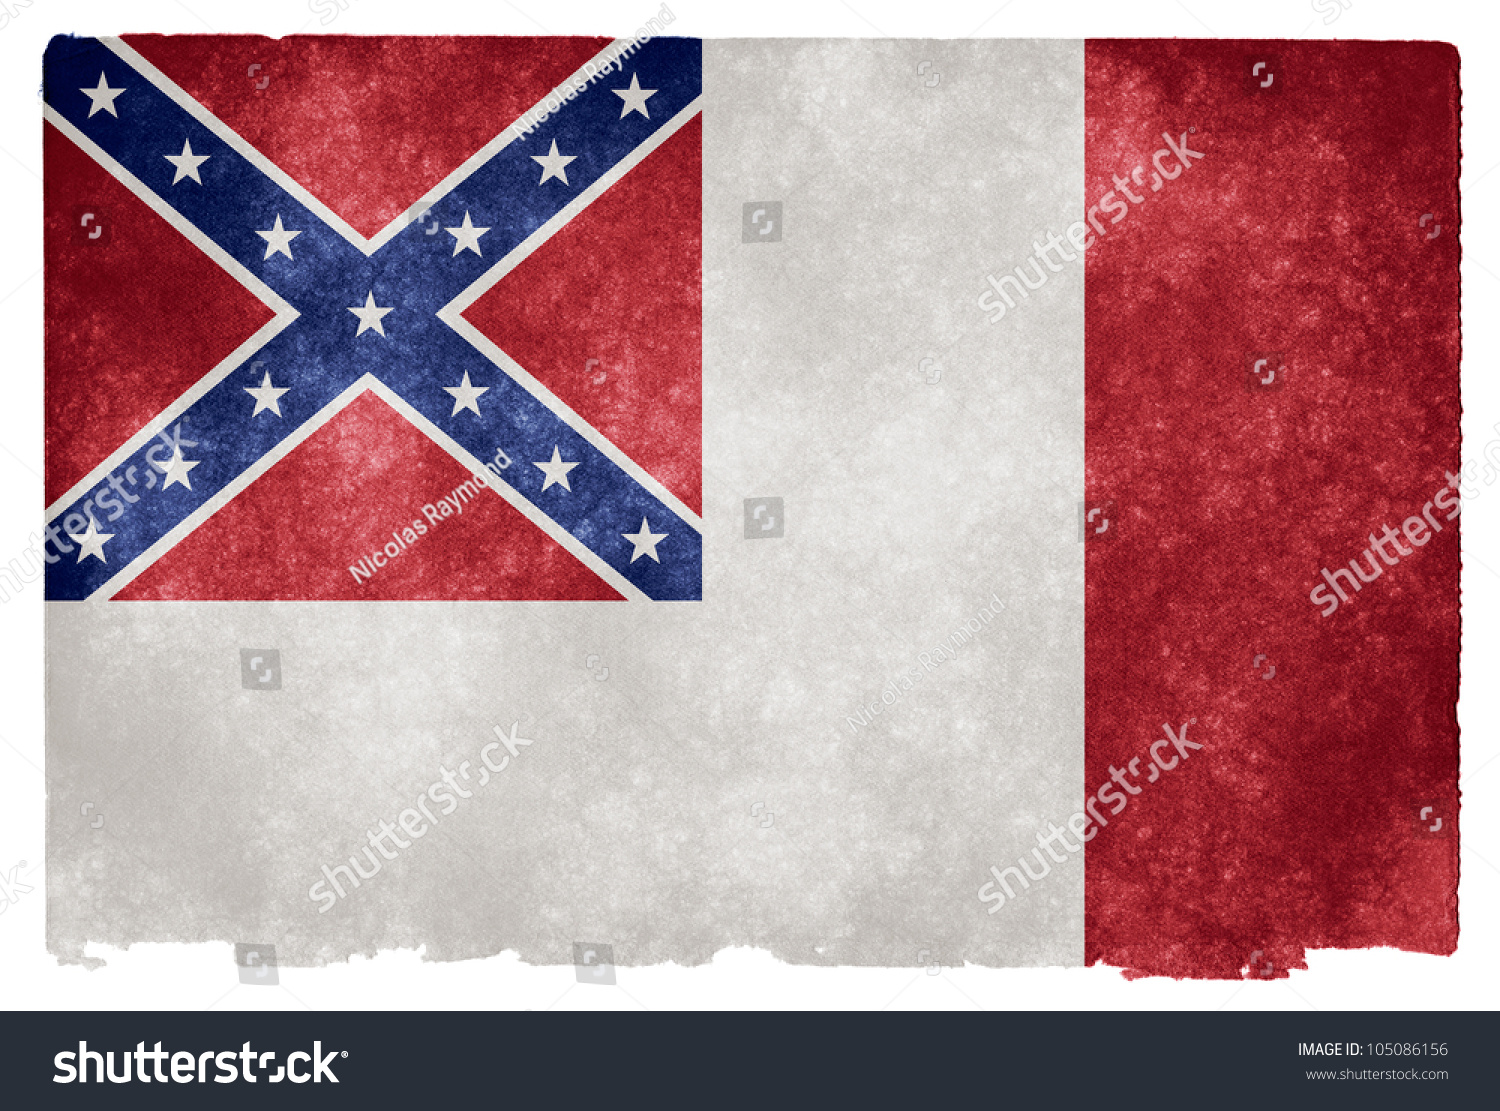 grunge textured historical confederate flag on stock illustration